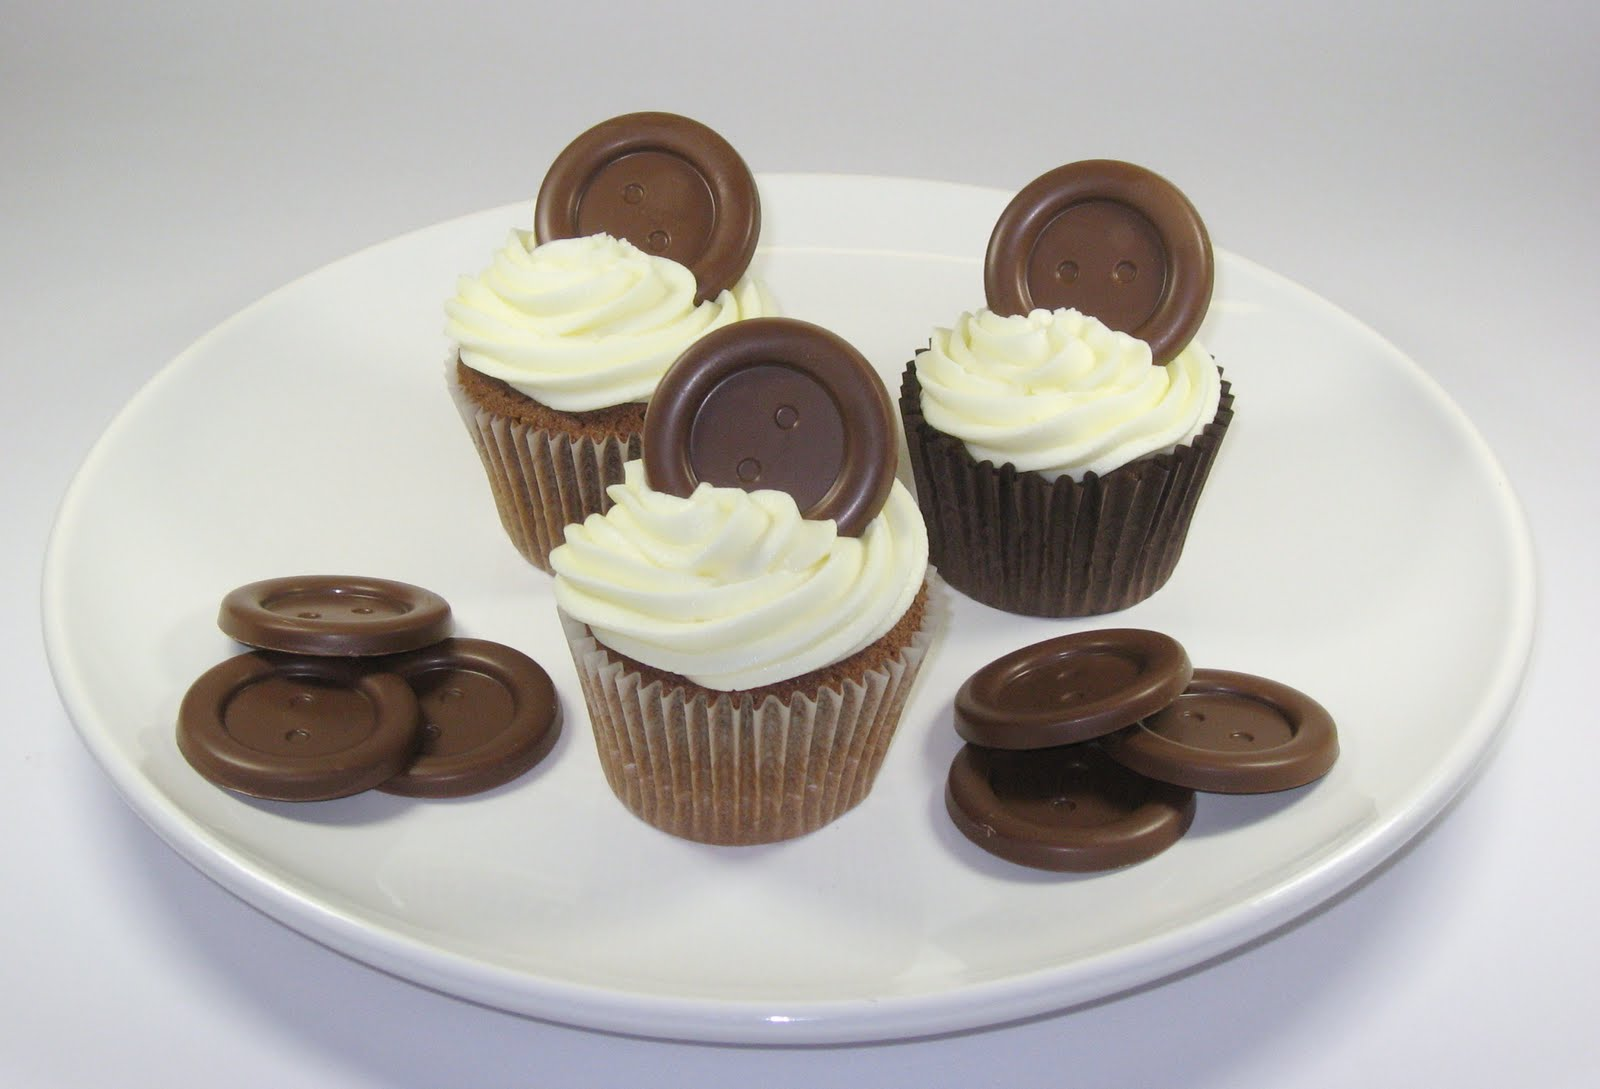 Kitchen Delights Giant Chocolate Buttons Cupcakes - National Cupcake Week 12-18 September 2011 : chocolate cupcake decorating ideas - www.pureclipart.com